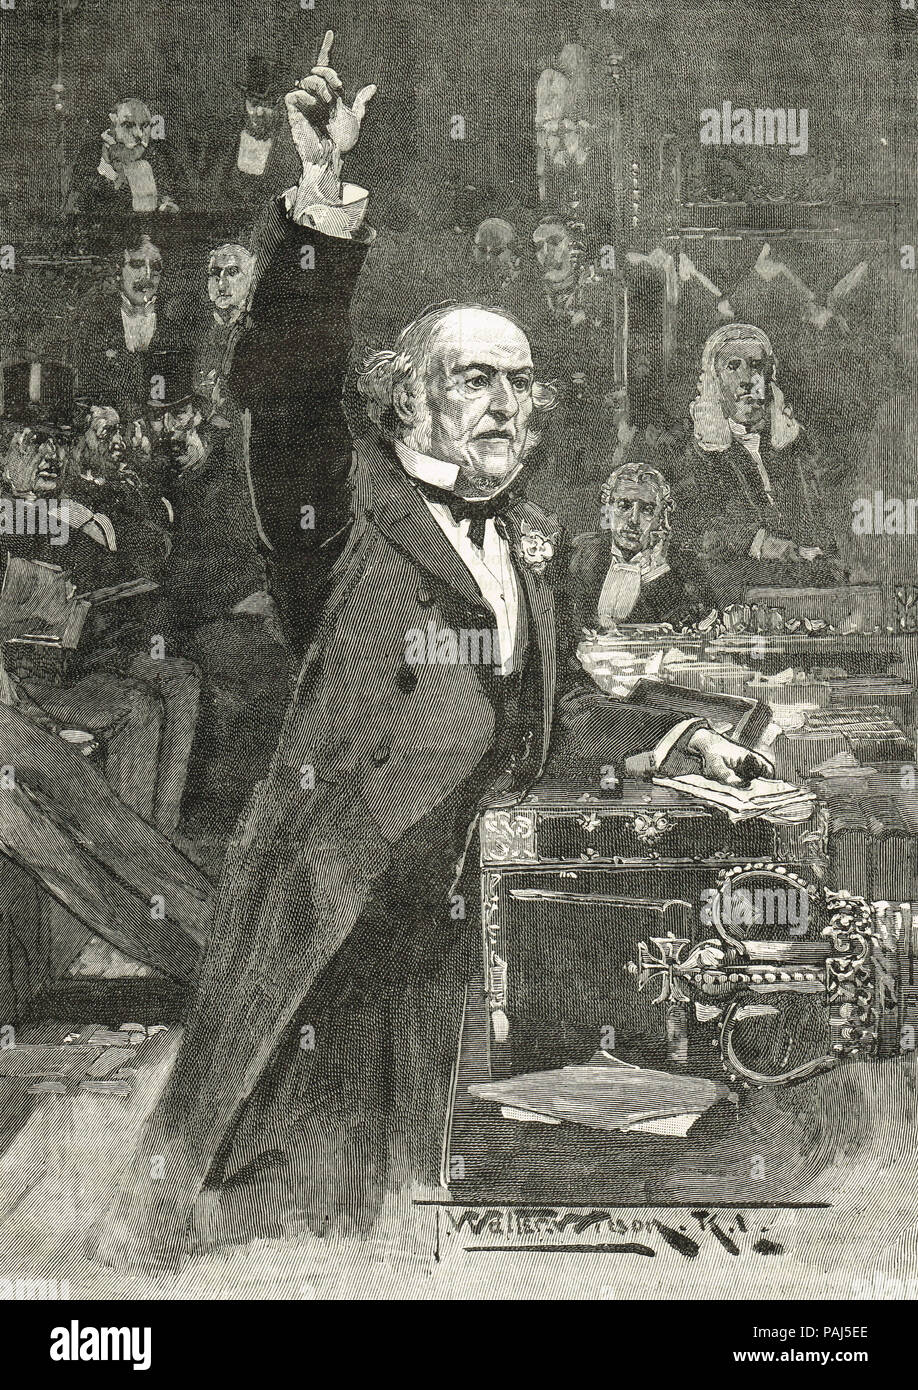 William Gladstone speech, introducing the Home Rule bill, 8 April 1886 - Stock Image